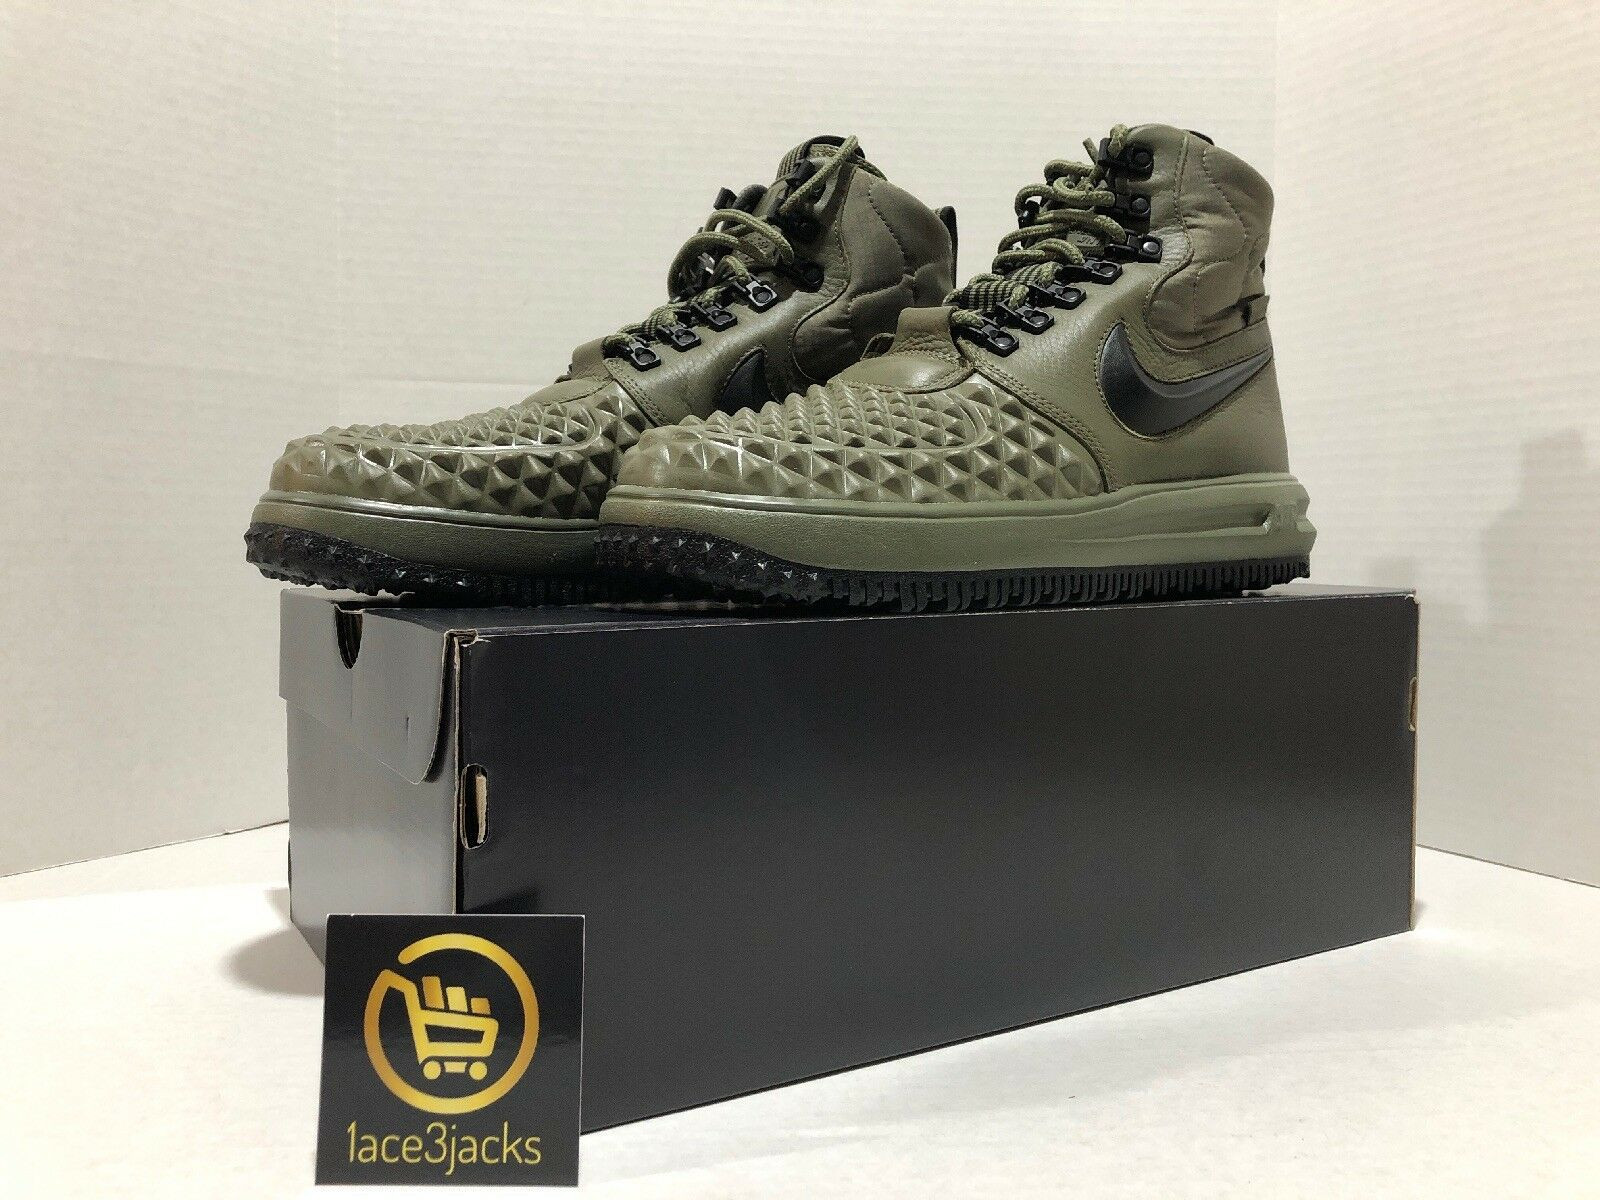 NIKE LUNAR FORCE 1 DUCK BOOT's BOOT's BOOT's Sneaker shoes Men's US SIZE 9.5 Green Black a53ebd